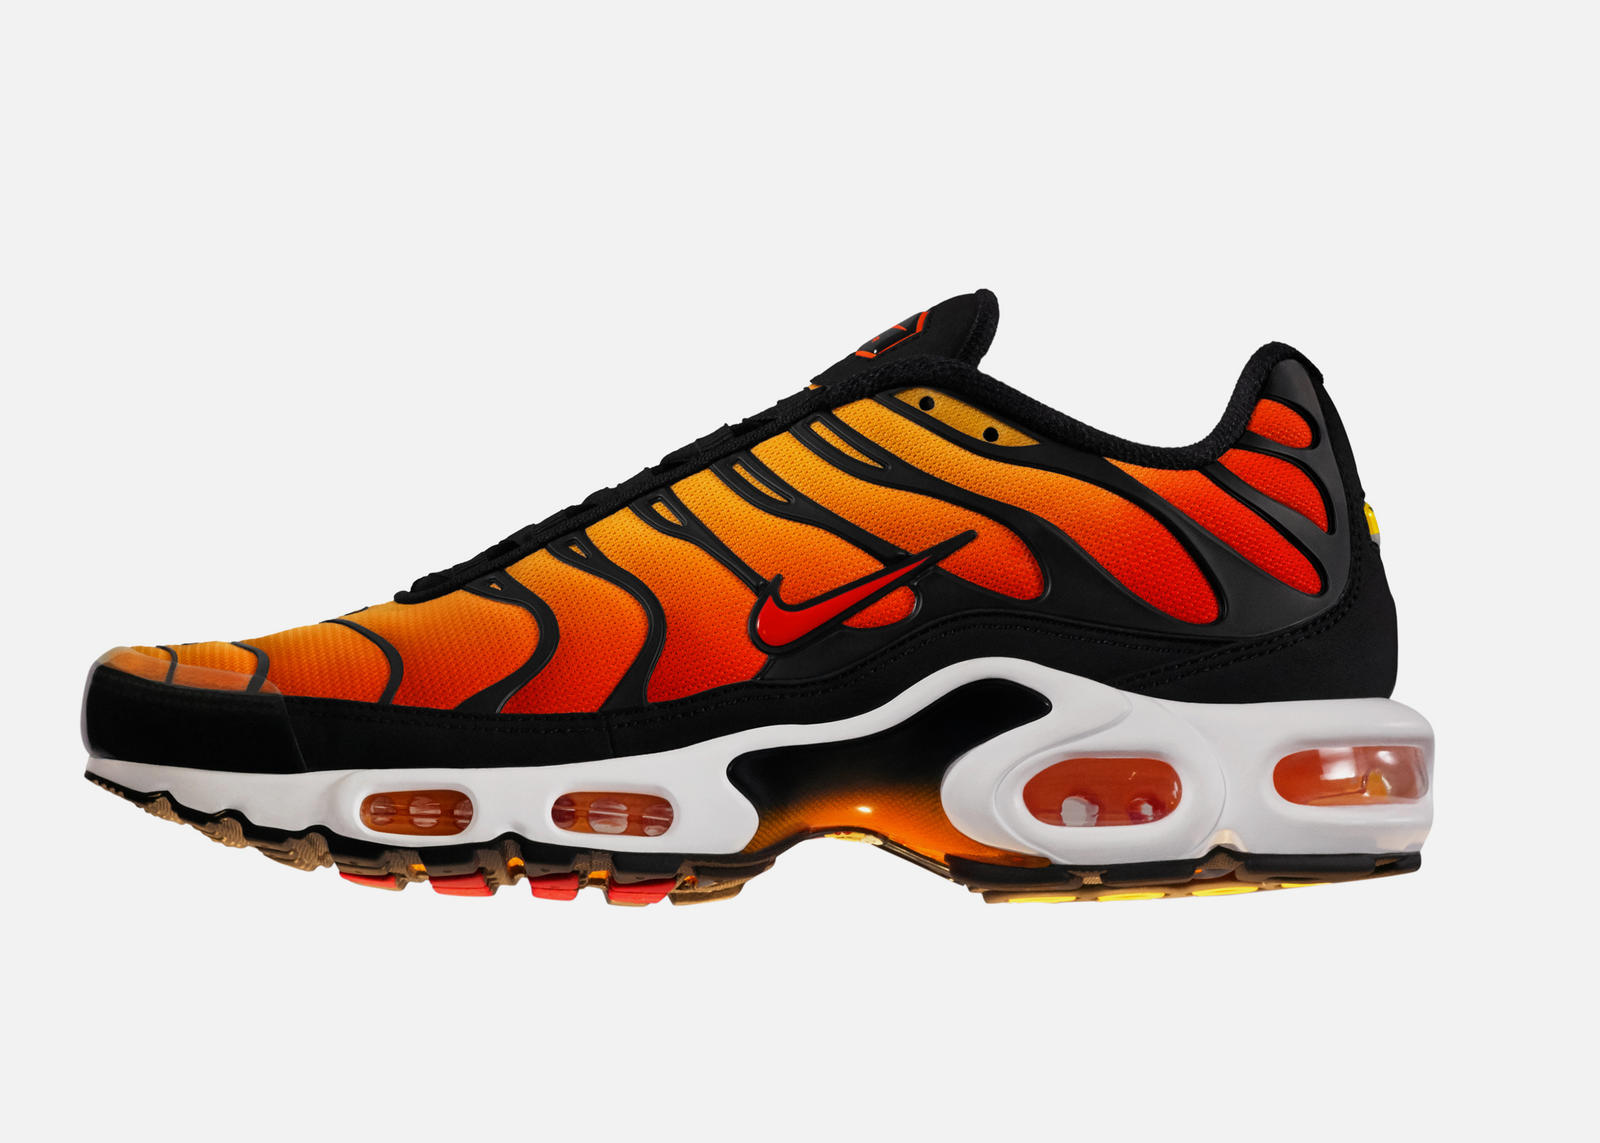 outlet store 8bffa efe7c The Untold Story of the Nike Air Max Plus 19